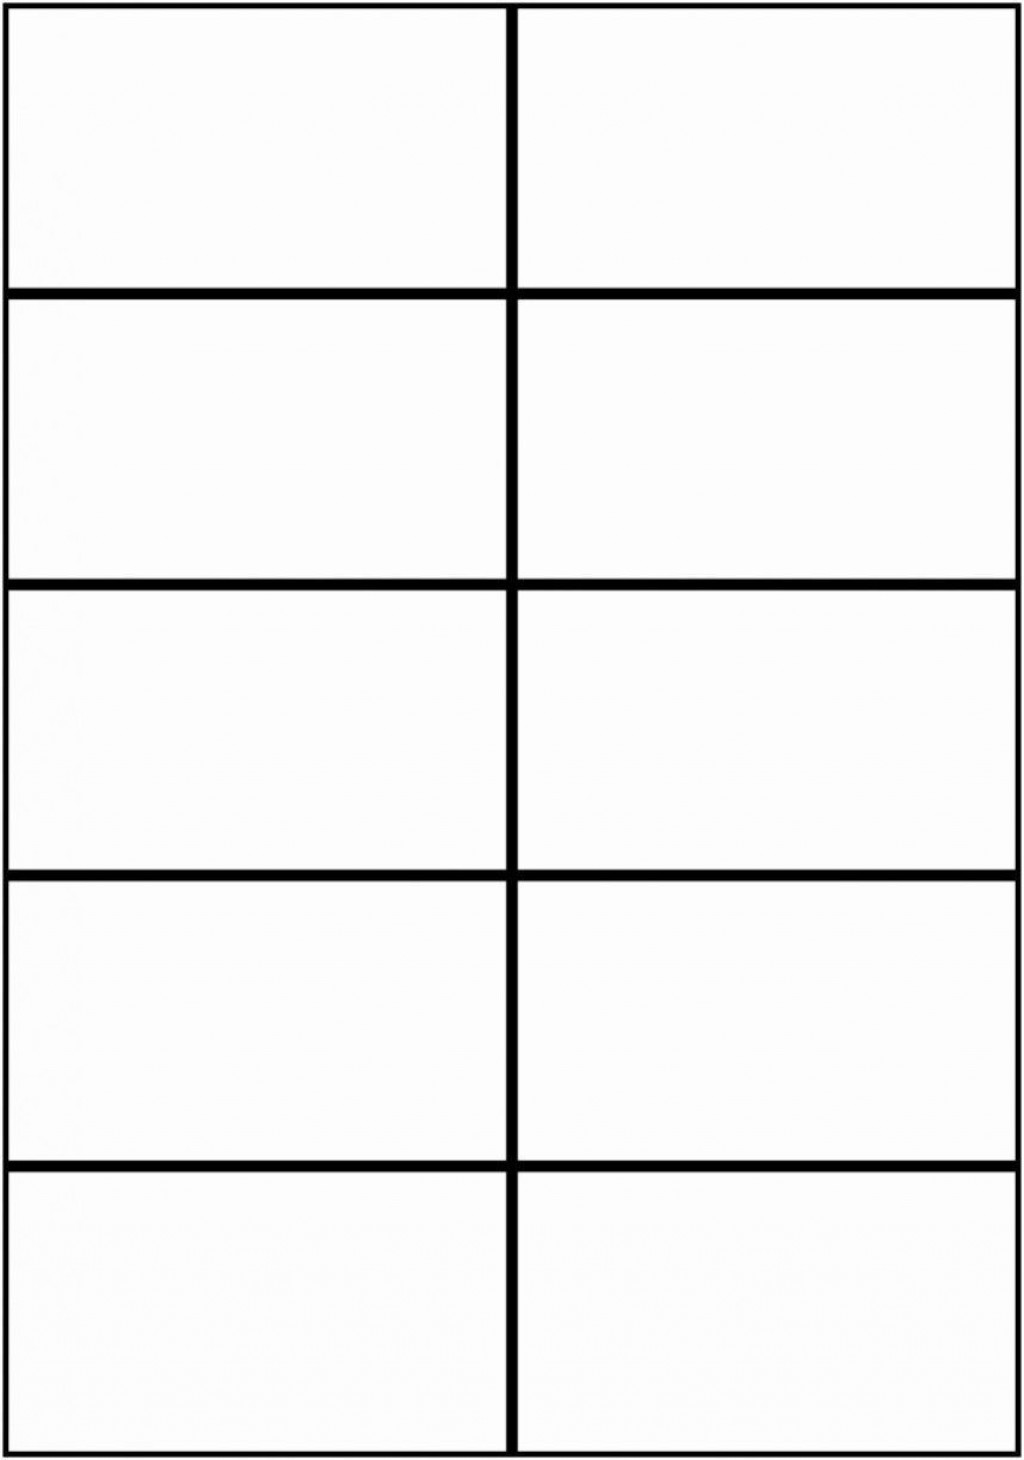 004 Simple Free Printable Busines Template Picture  Templates Card For Google Doc Budget Microsoft WordLarge